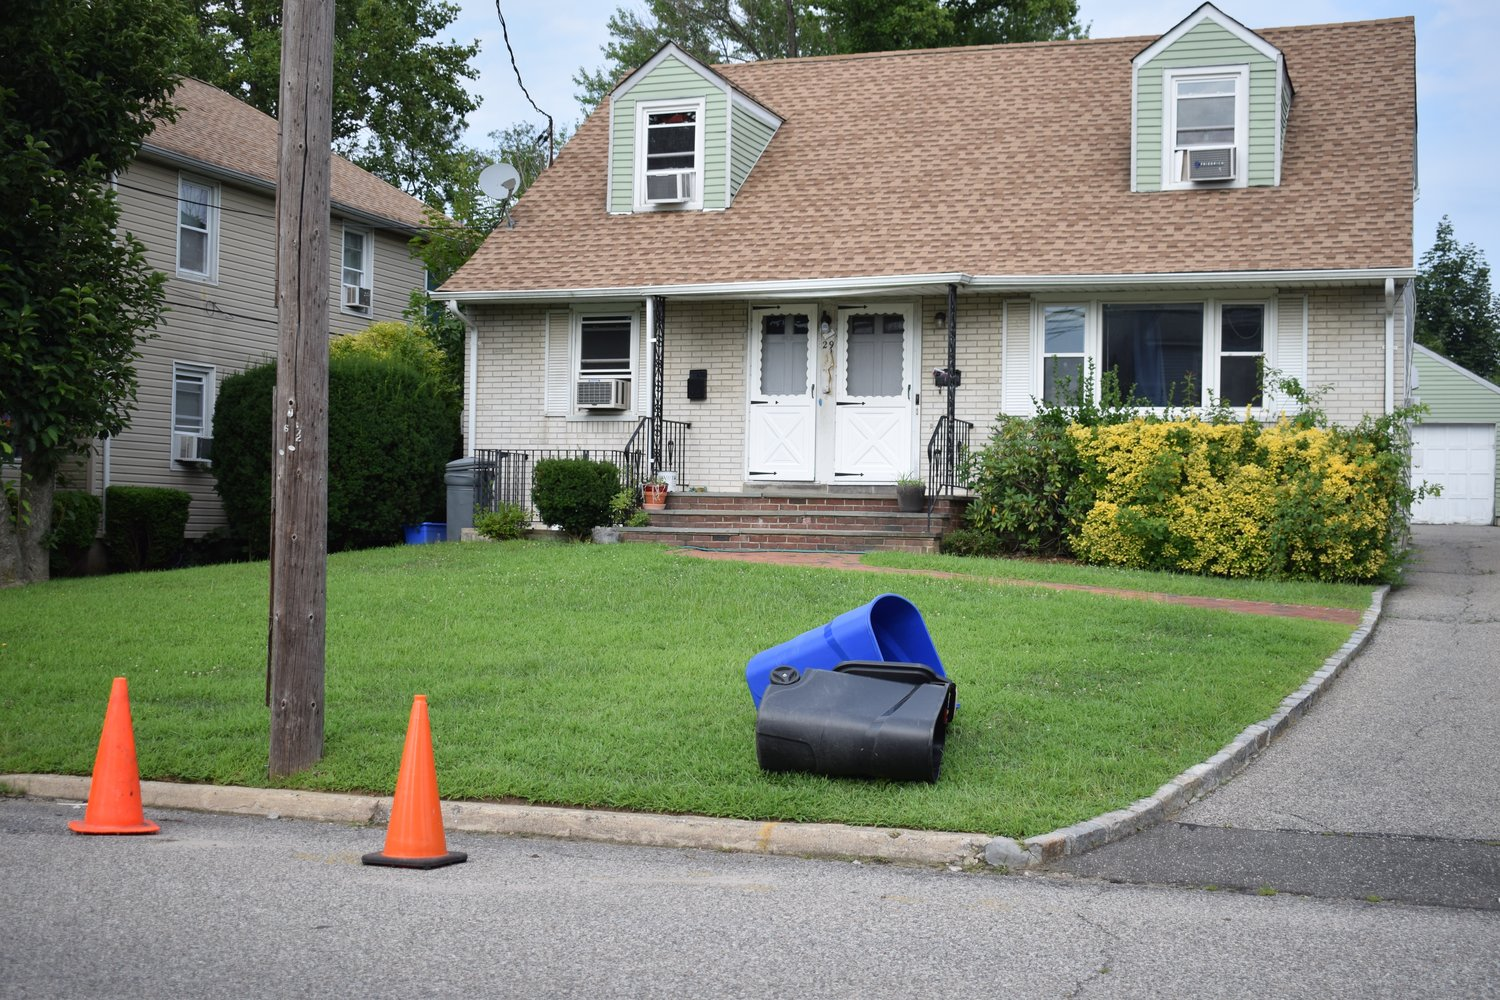 Residents along Nassau Avenue put cones out to save their parking spots.